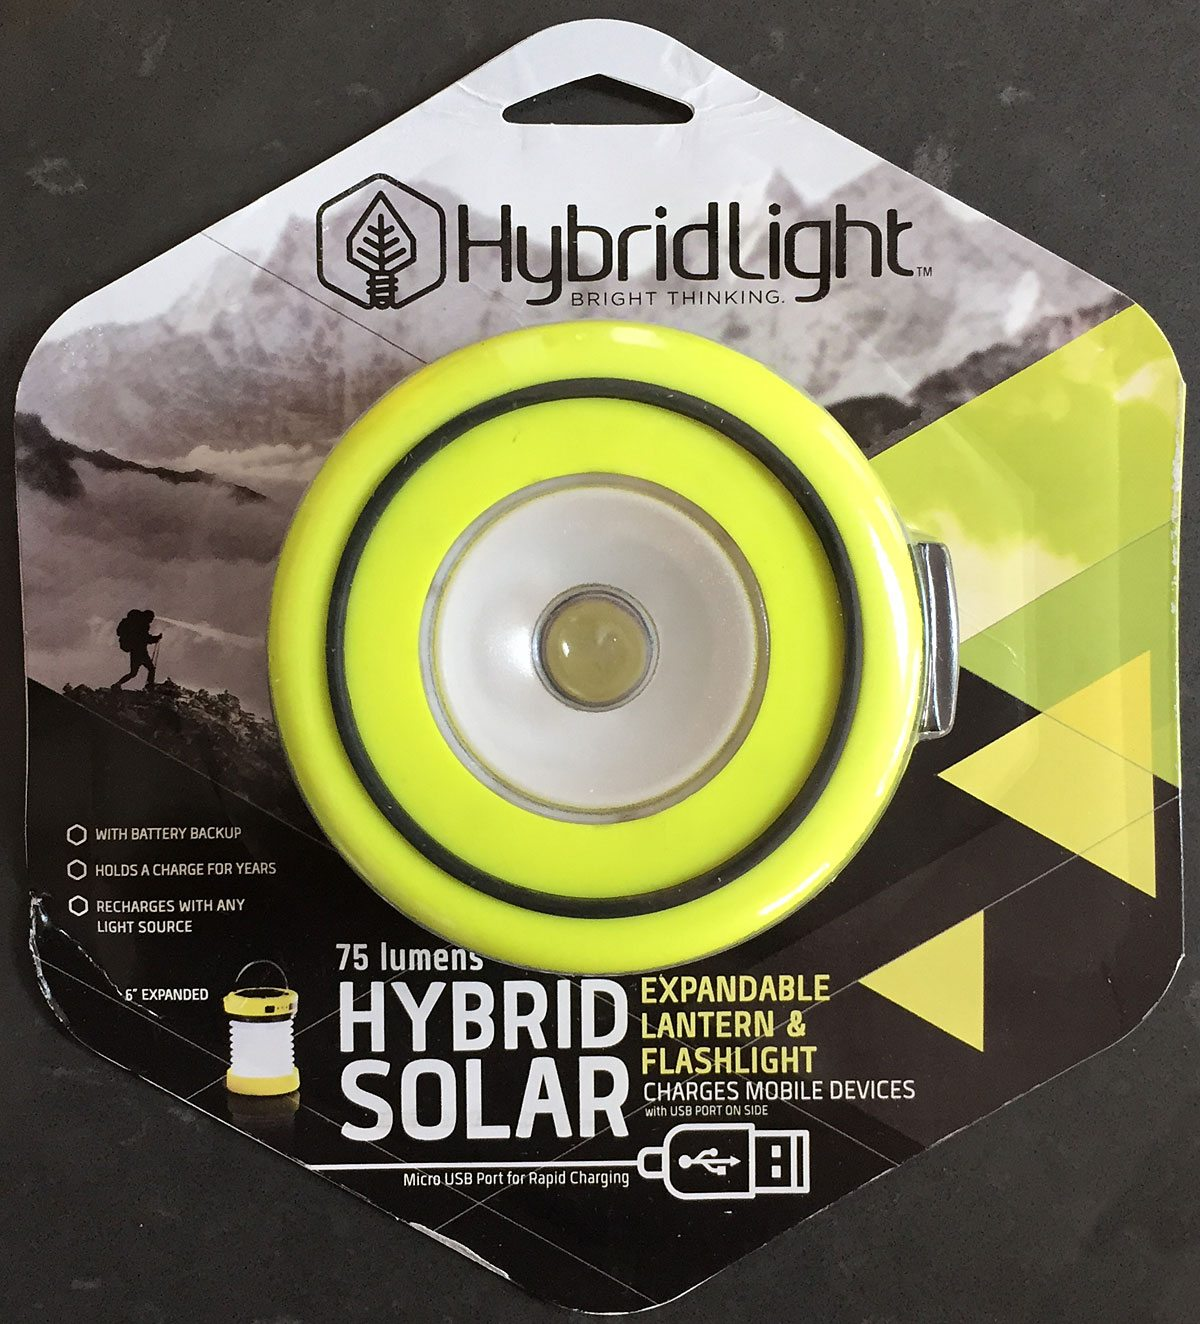 Review Hybridlight Solar Lantern Flashlight And Charger Geekdad Kabel Usb To Micro Howell High Quality 1 5 Meter